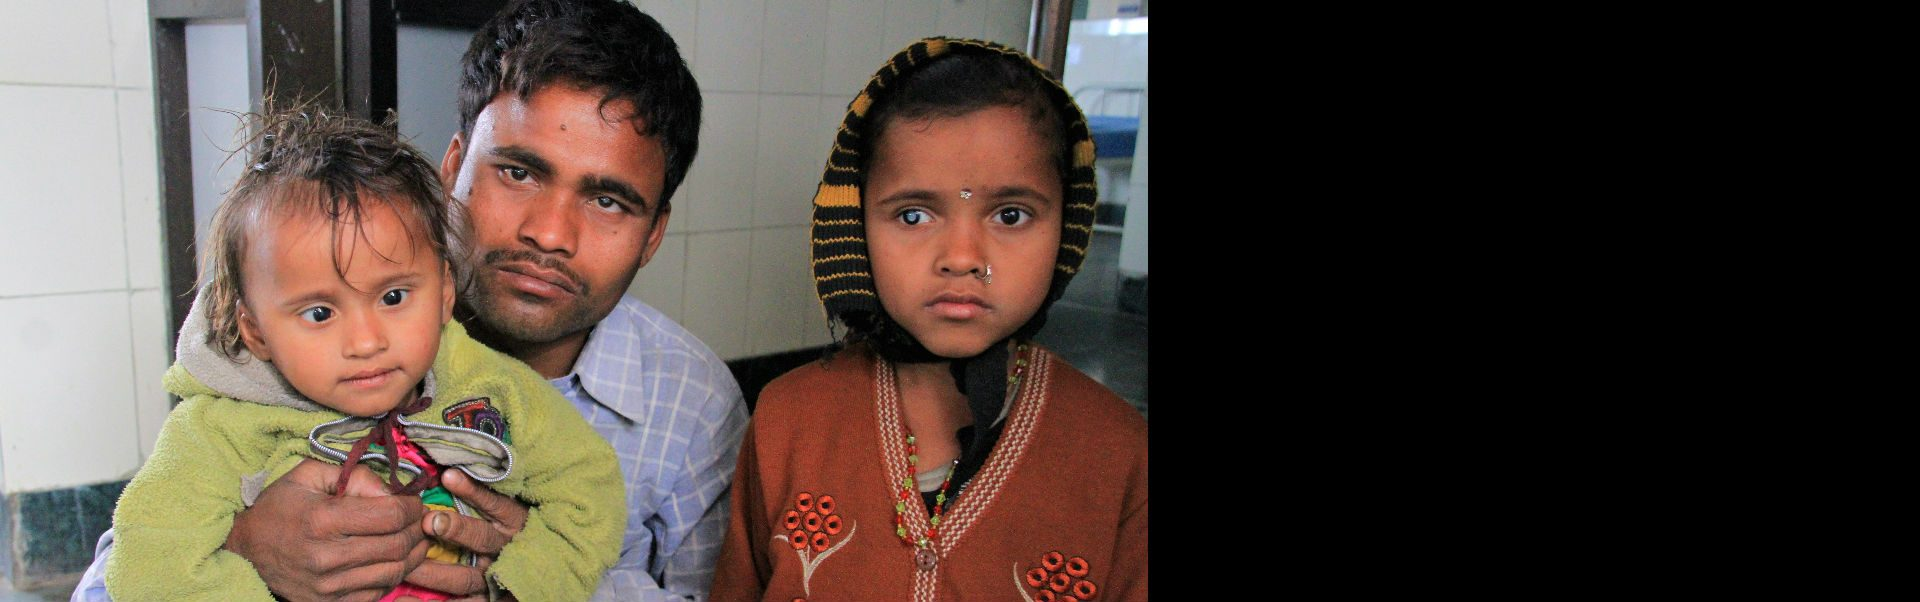 Uttam and his daughters who live in Nepal have cataracts and need sight-saving surgery.